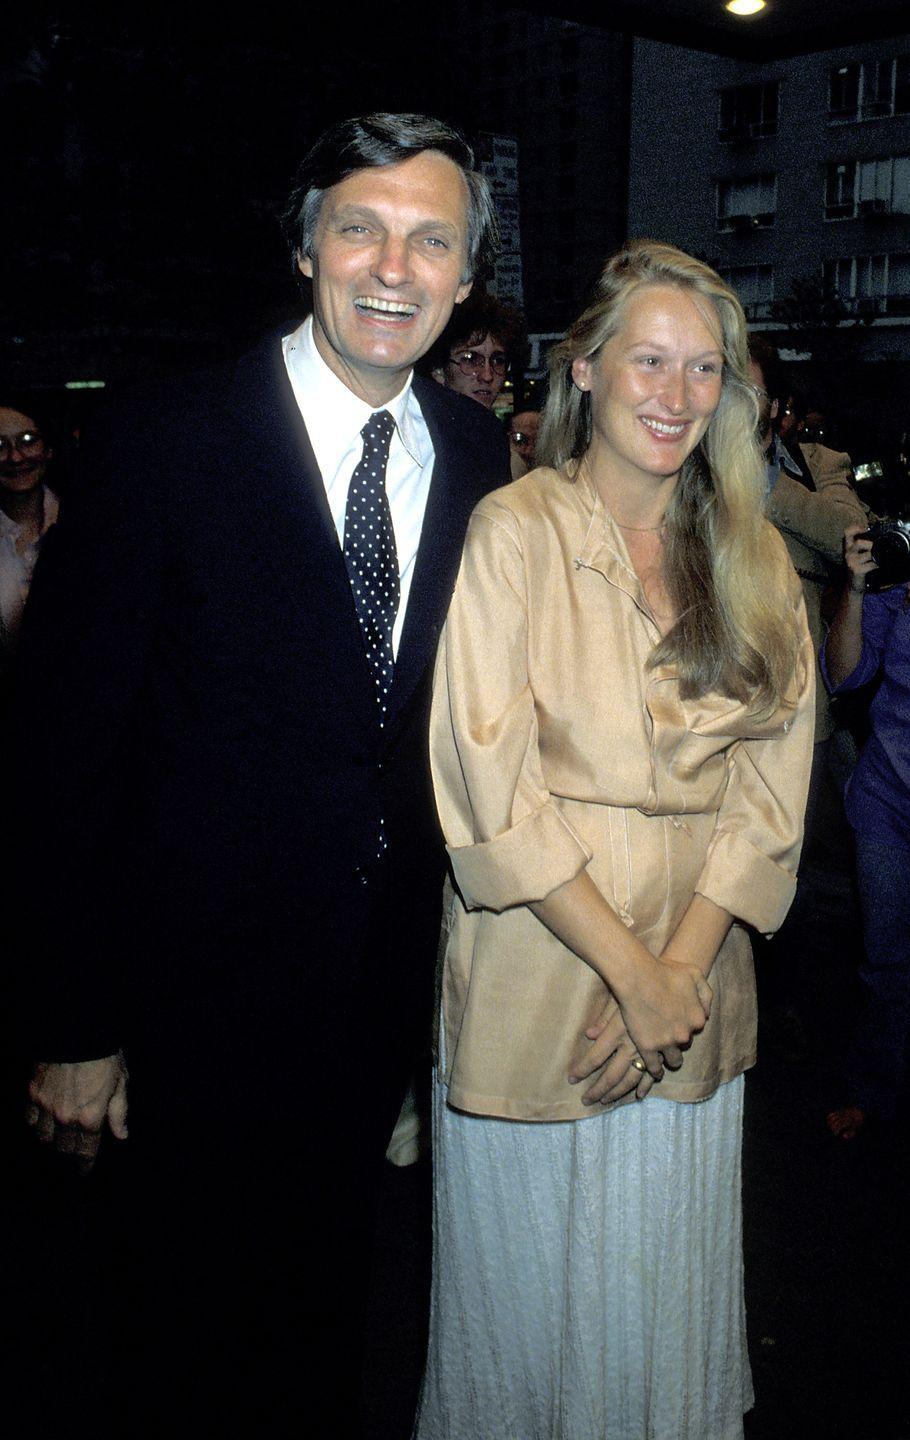 <p>Before Meryl Streep was one of the most respected names in film, the actress appeared in the 1979 film <em>The Seduction of Joe Tynan</em>. Here she is at the premiere with costar Alan Alda. A year later, the actress landed the lead role in <em>Kramer vs. Kramer </em>and the rest is history...</p>